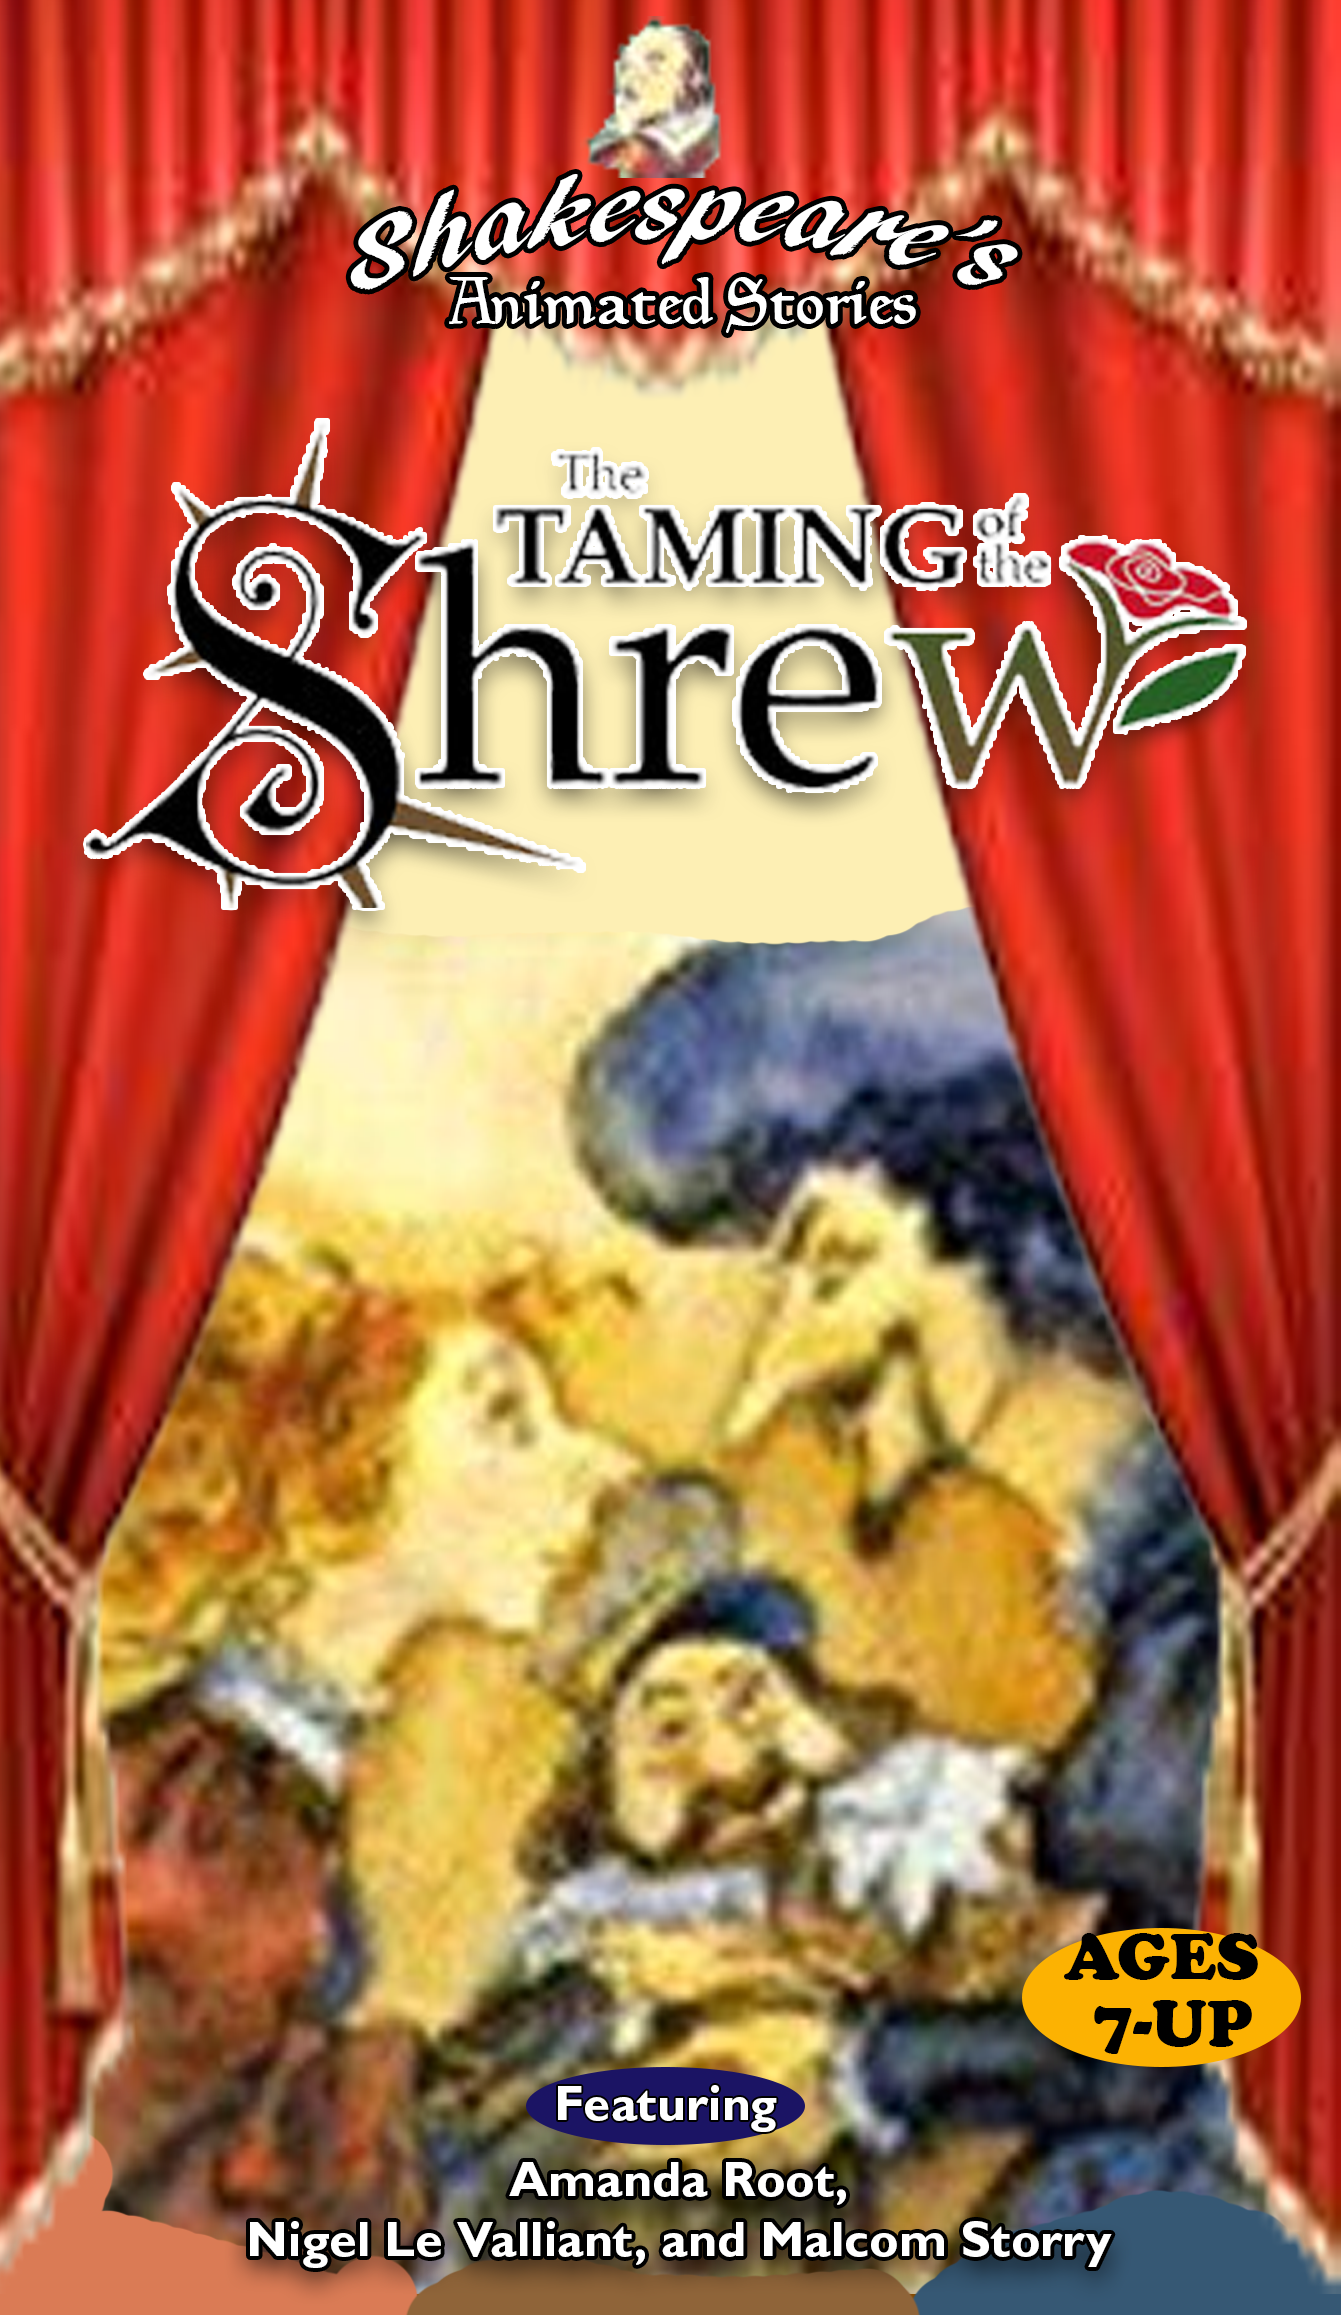 Shakespeare's Animated Stories: The Taming of the Shrew (1998 VHS)